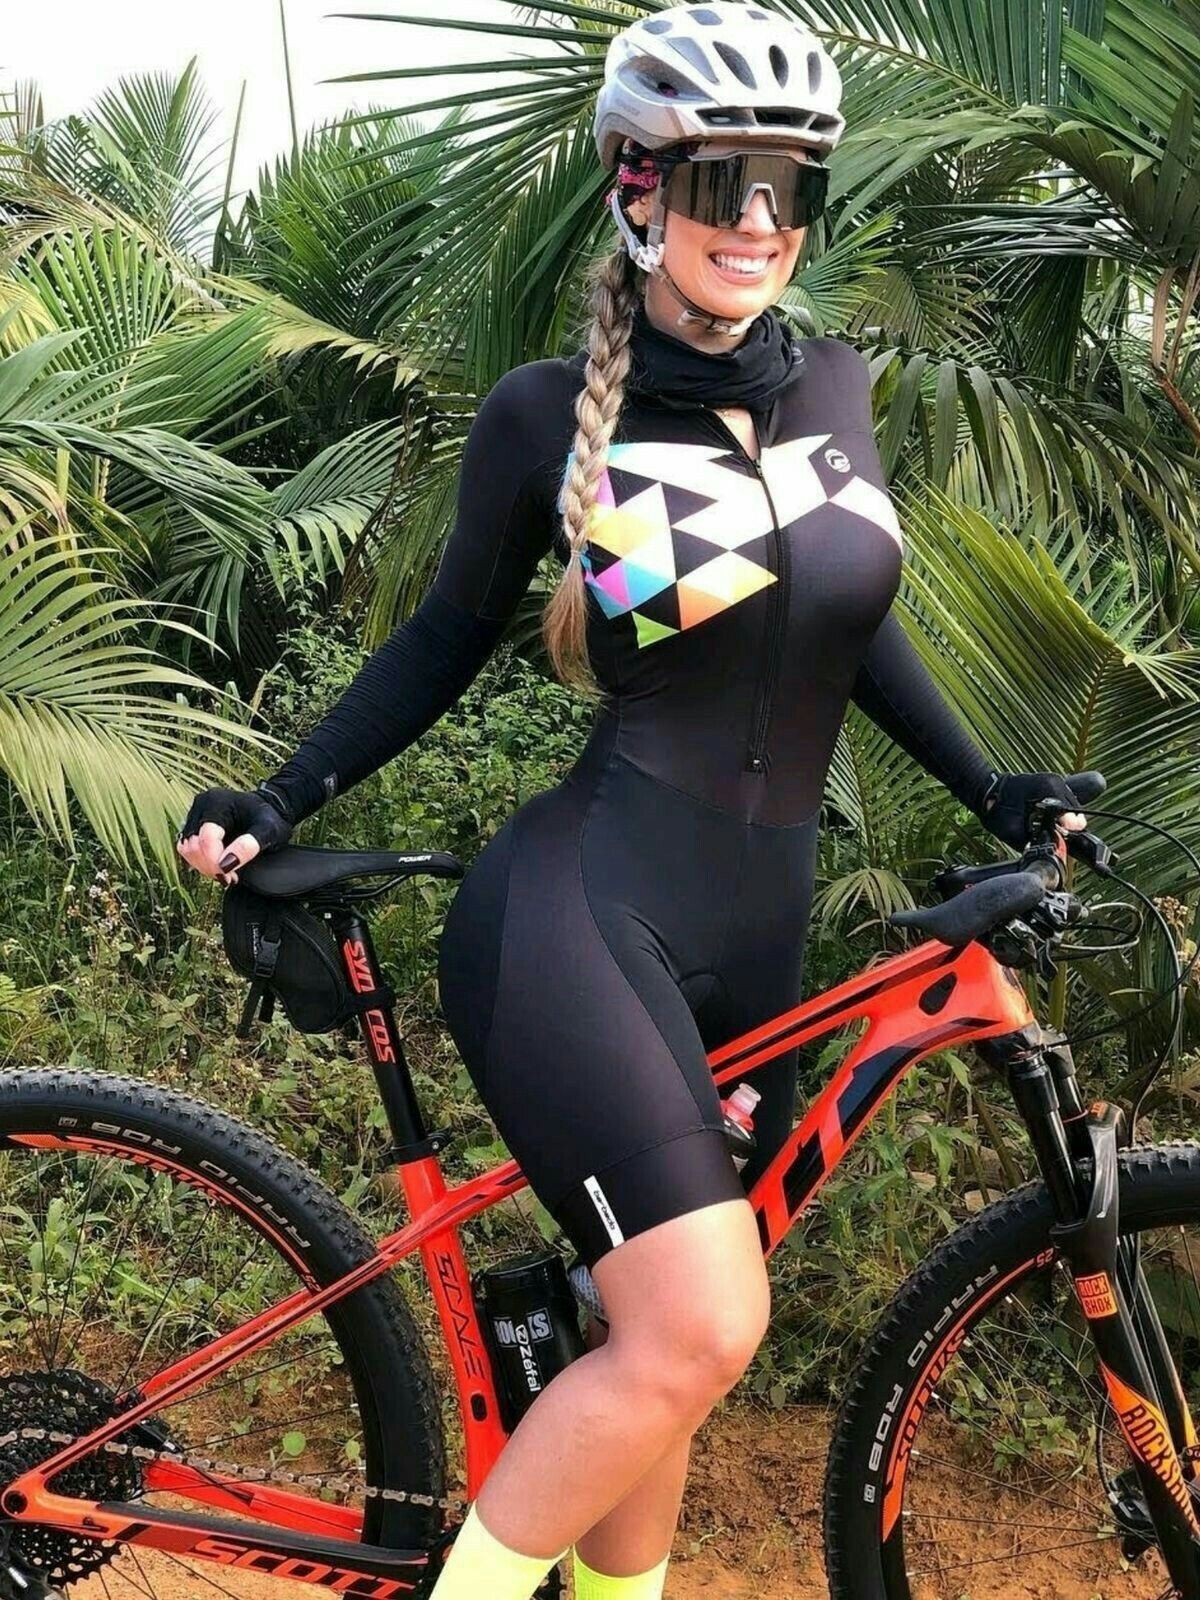 Curves And Lines Women And Bikes Bicycle Women Cycling Girls